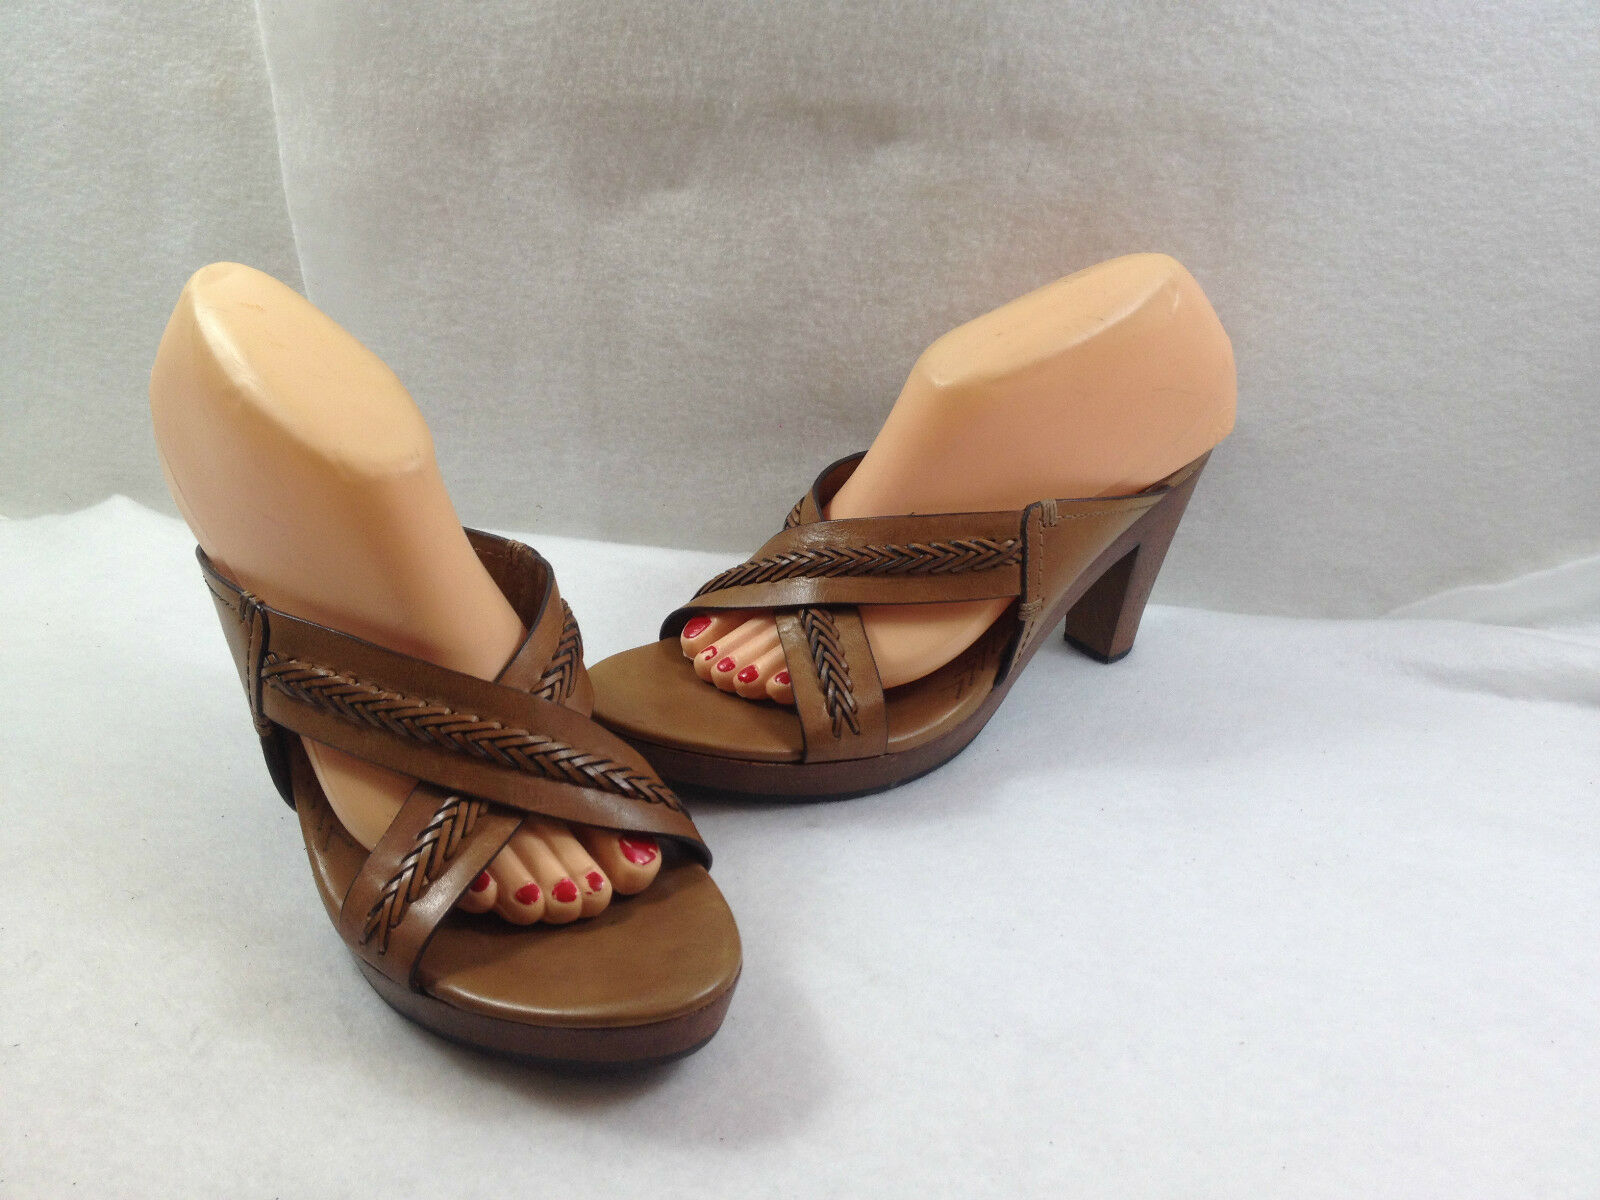 Cole Haan High Heel Slides Sandals Shoes Womens Size 10.5 B